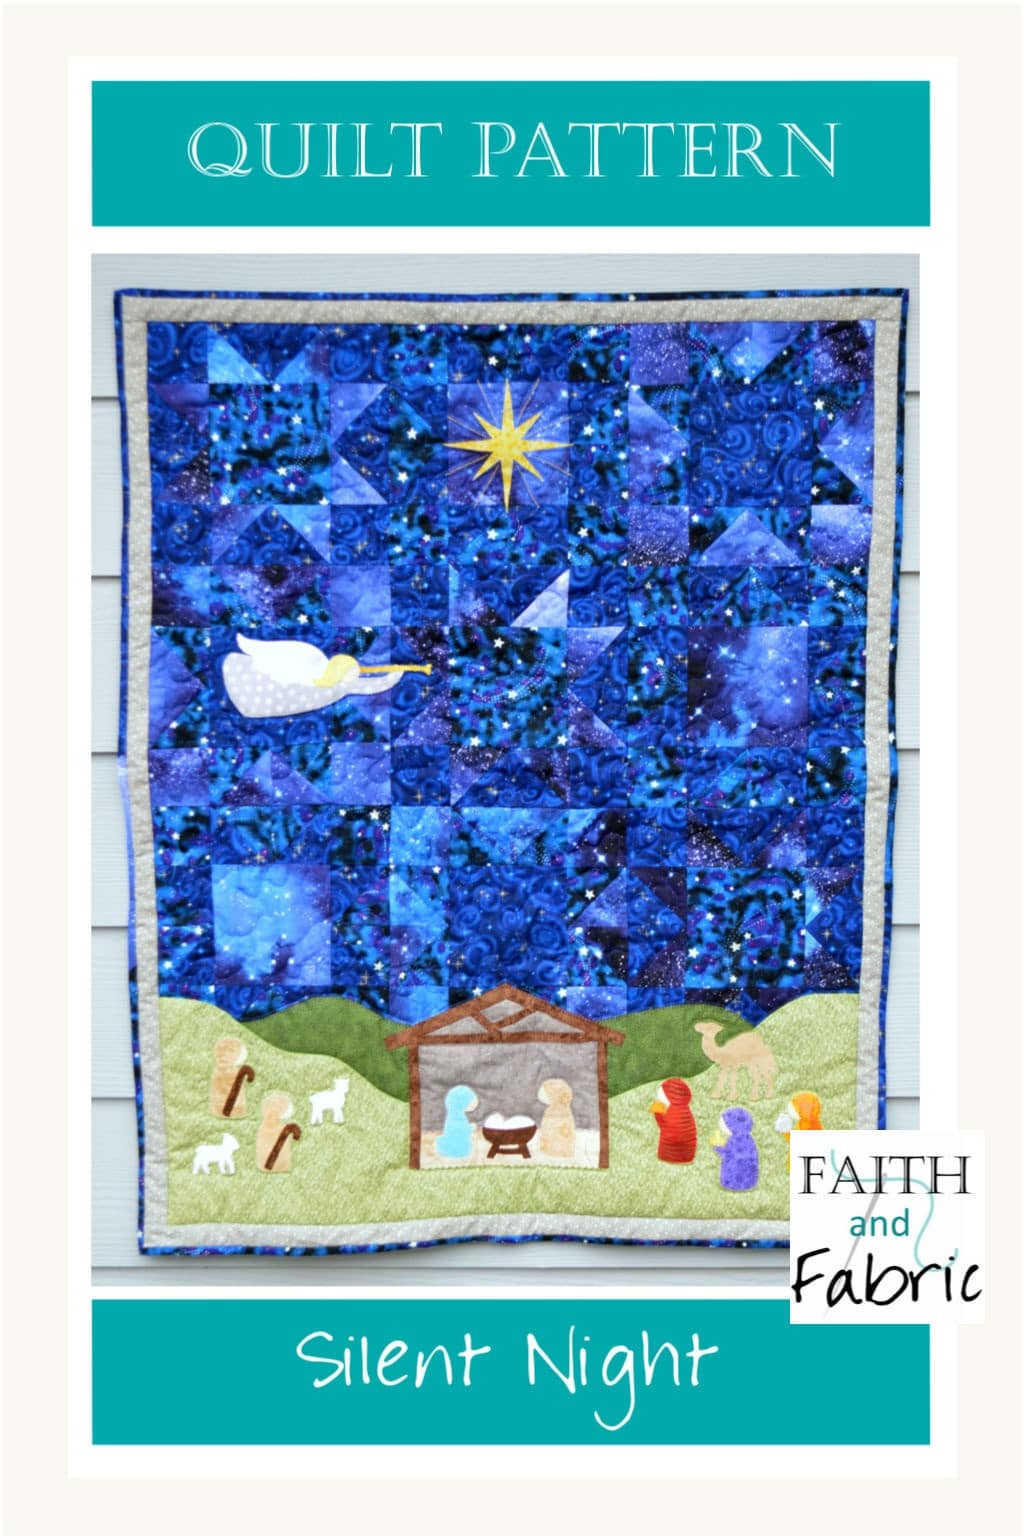 This beautiful silent night quilt pattern shares the glory of that first night; the dramatic stars in the sky create the backdrop for Mary, Joseph, and Jesus come Christmas morning. Created by Faith and Fabric.